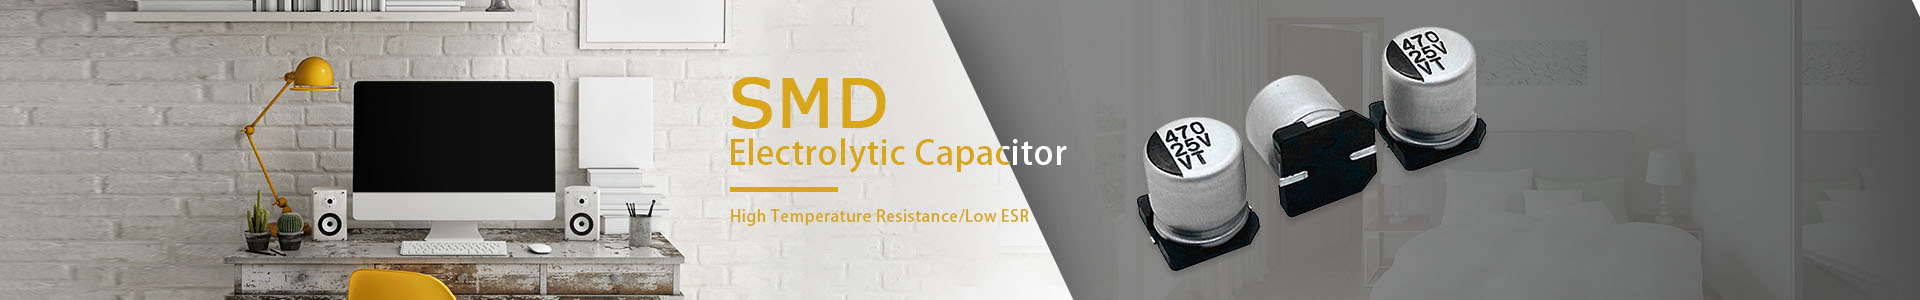 chip capacitor for general purpose 150UF 50V SMD aluminium capacitor with good quality - SMD Capacitor